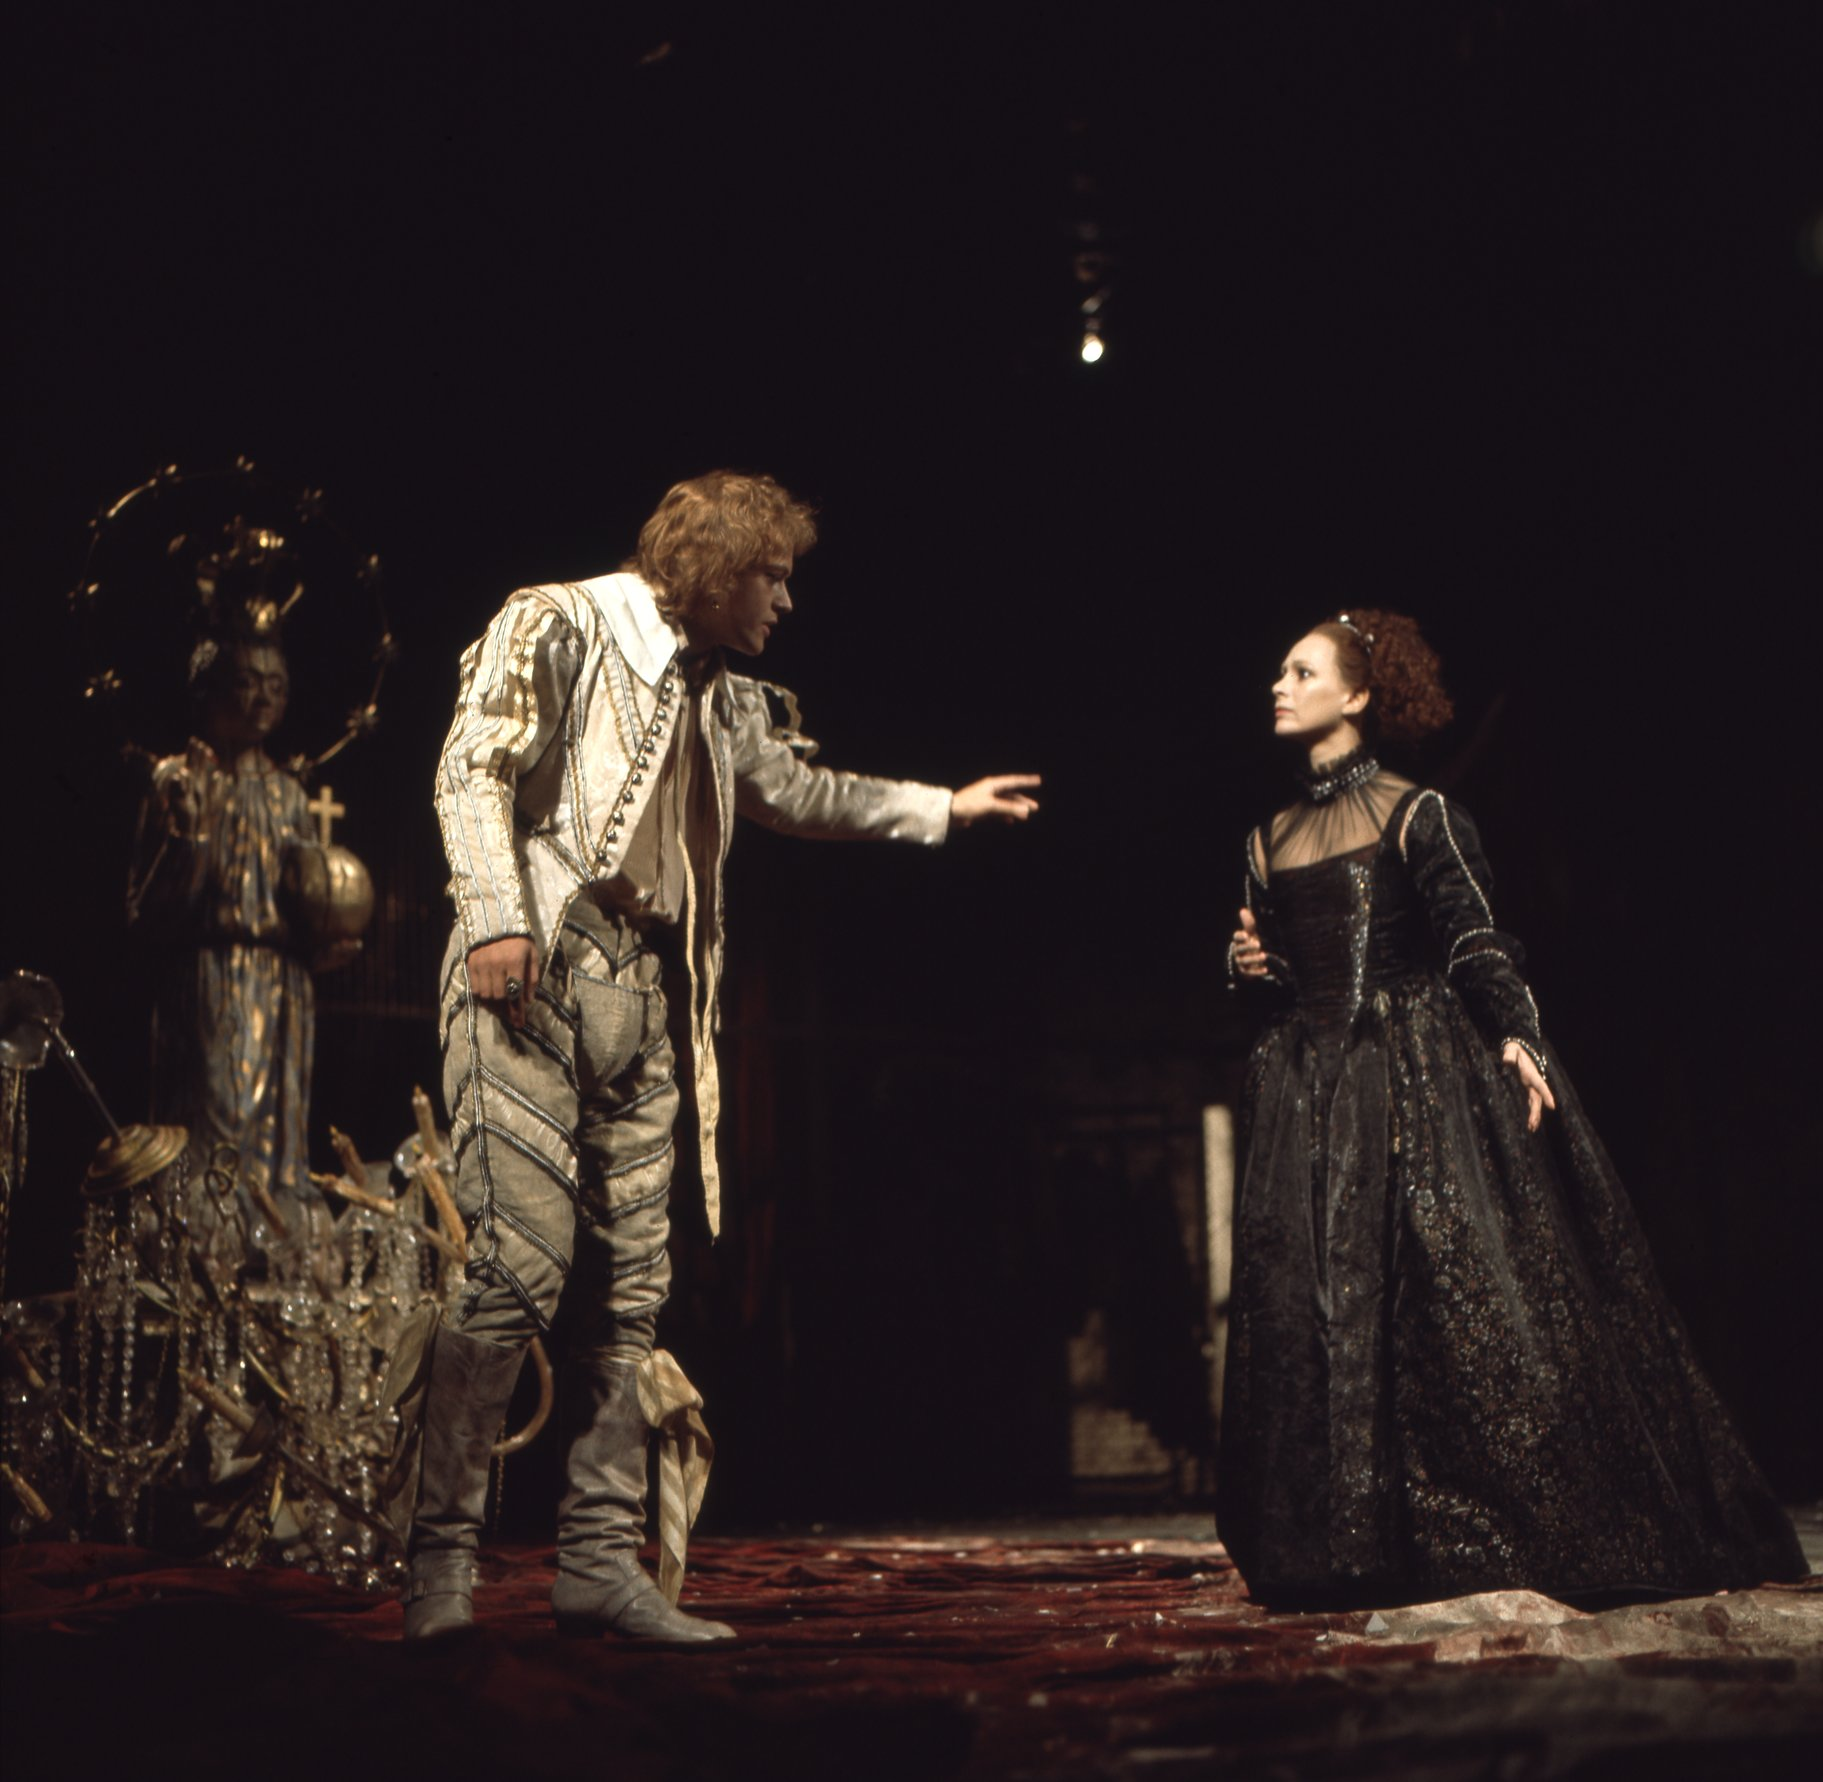 A man in all white talks to a woman in a black gown.